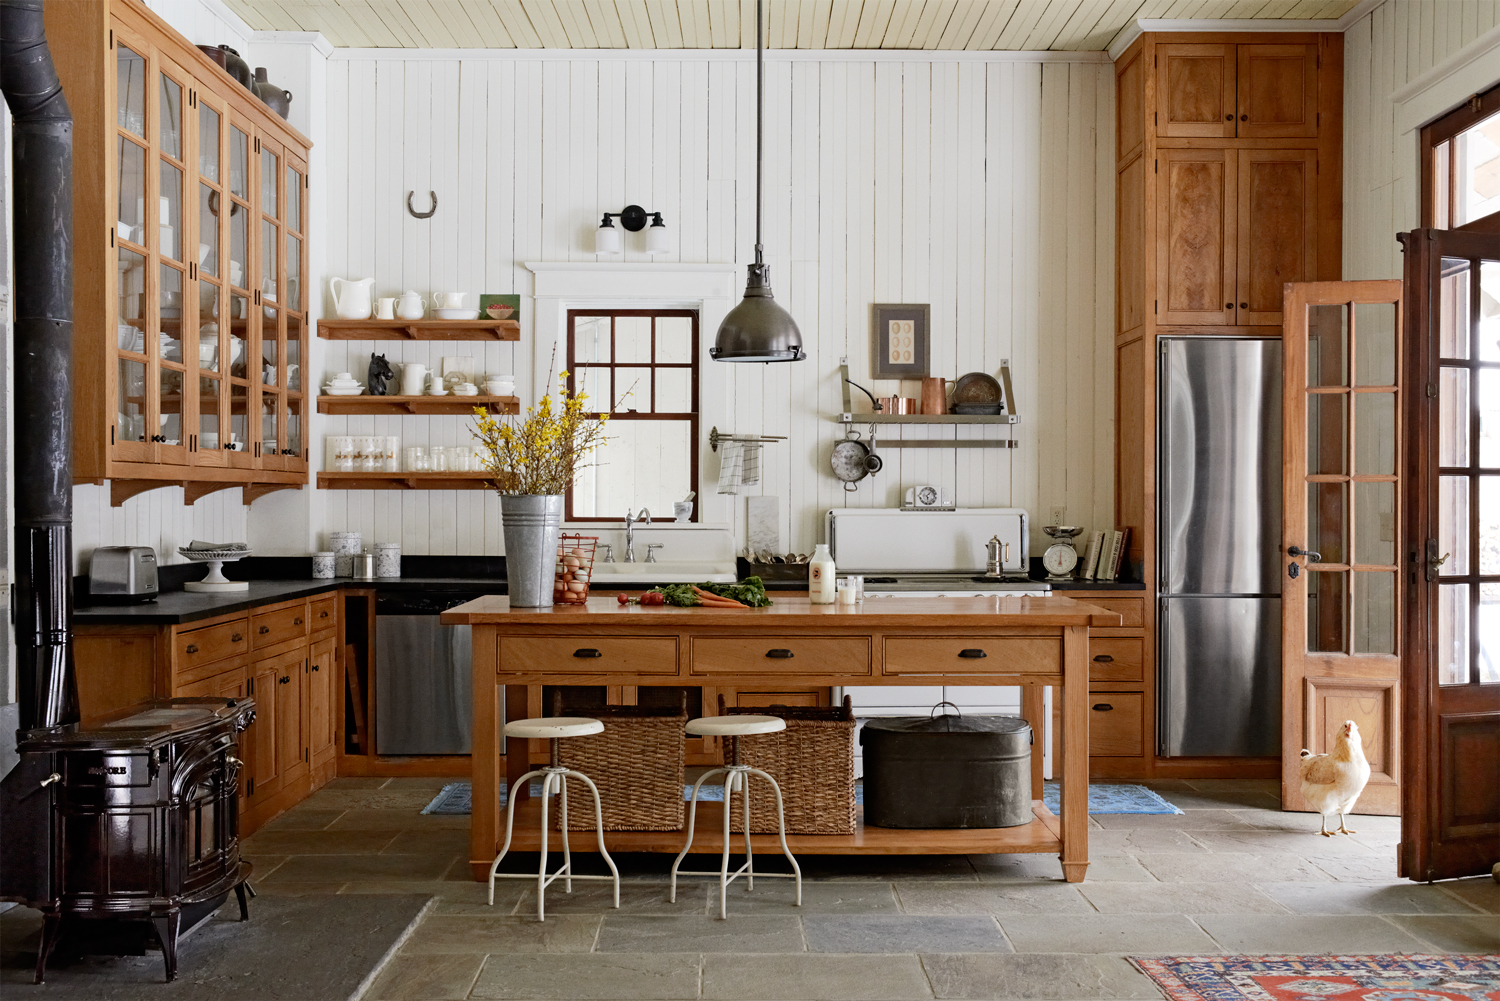 8 Ways To Add Authentic Farmhouse Style To Your Kitchen